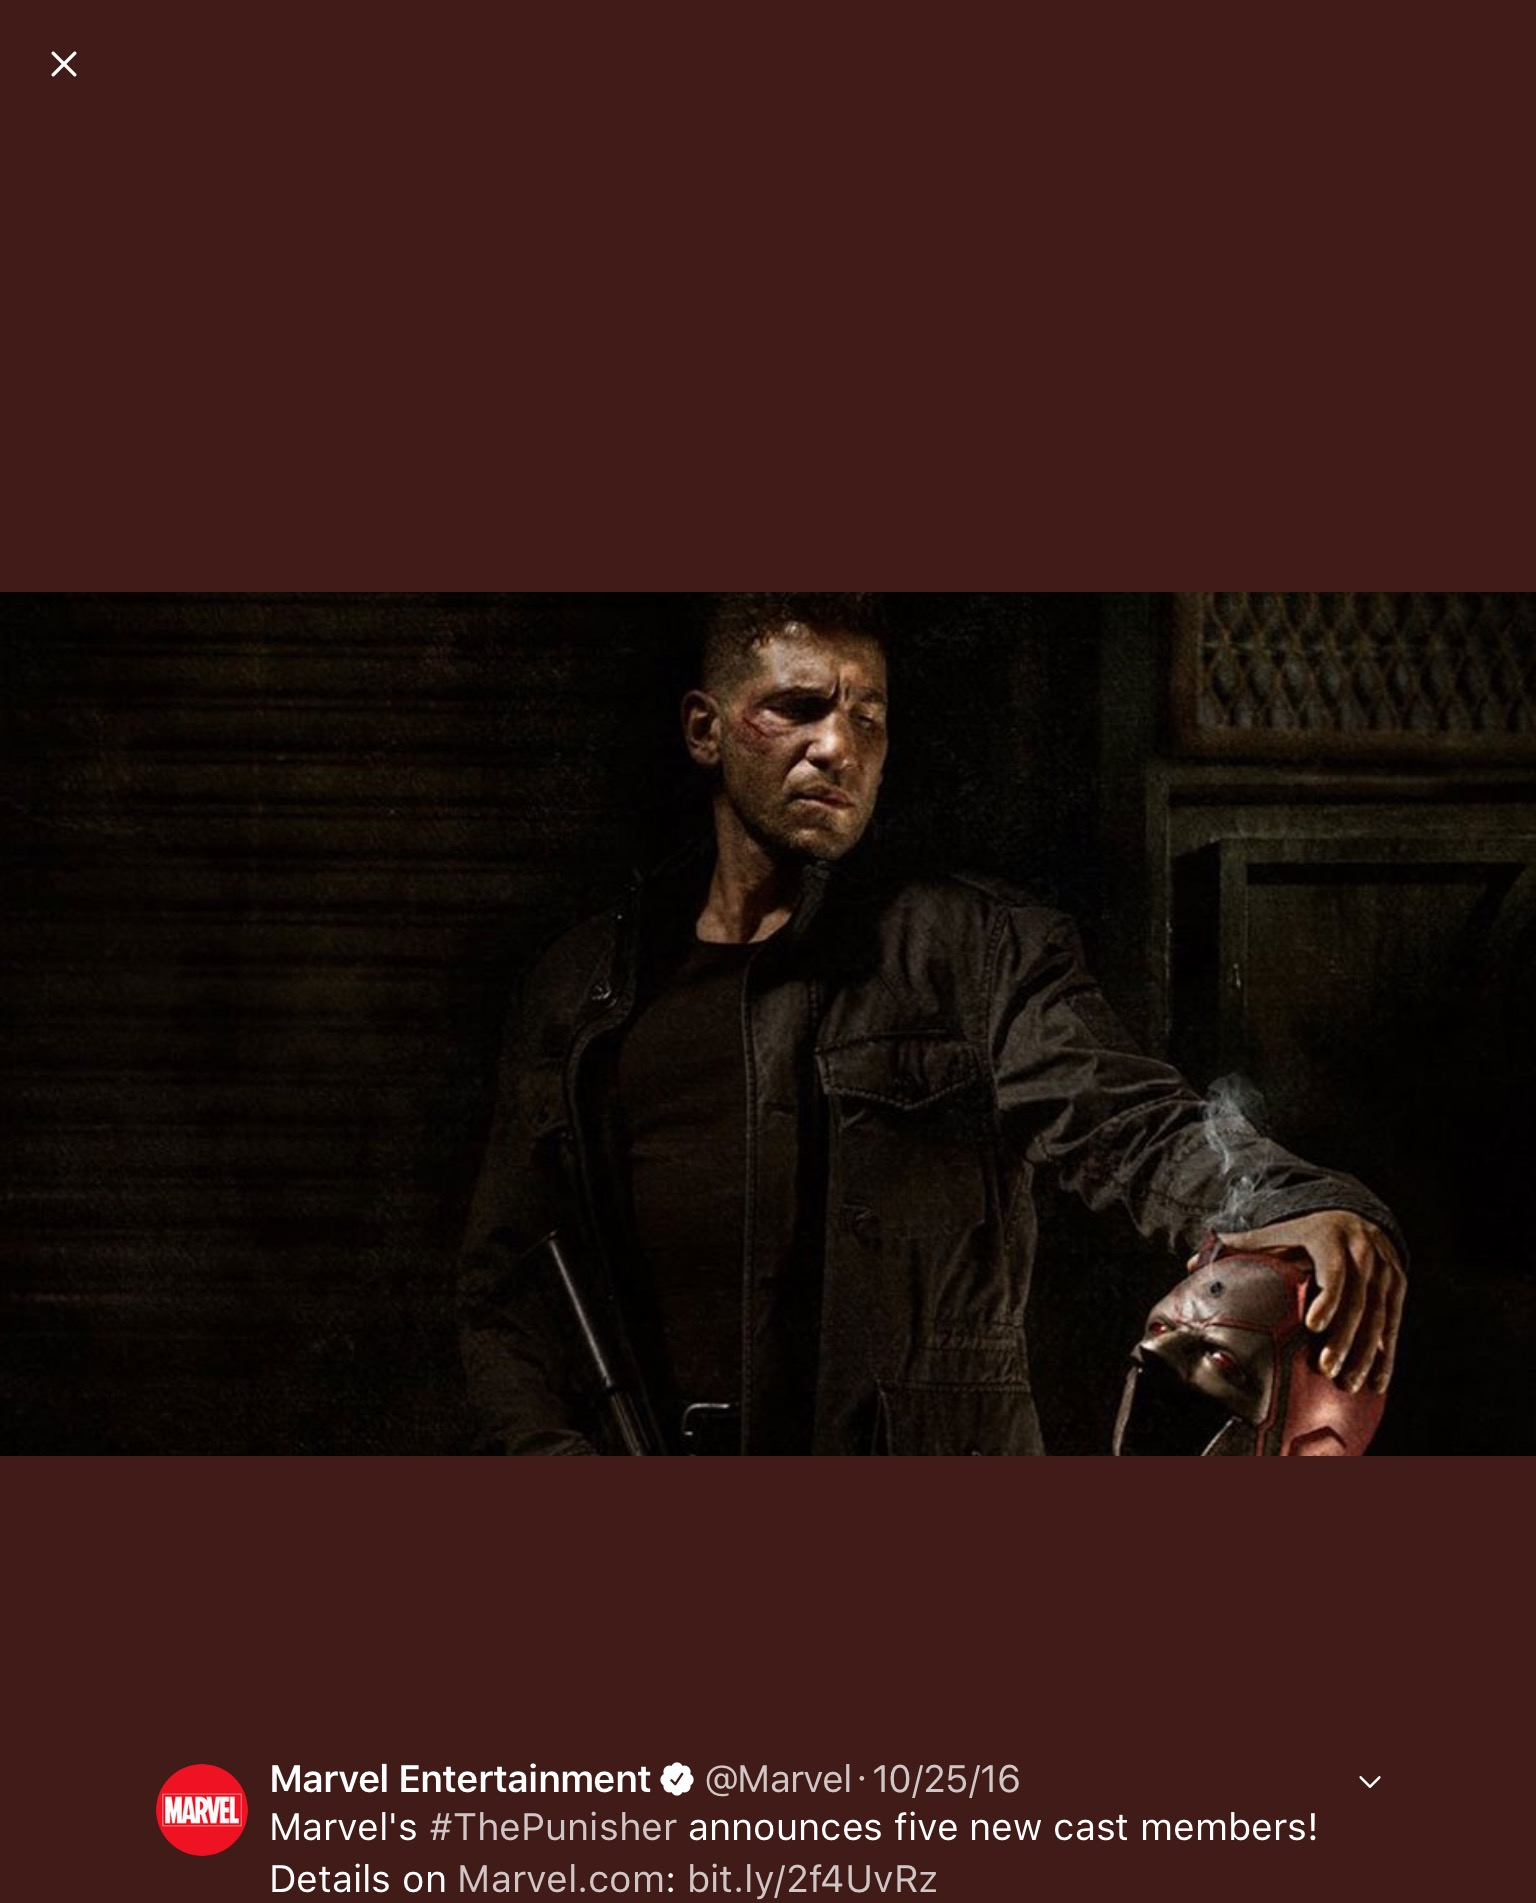 The Punisher Trailer That Changed the Game